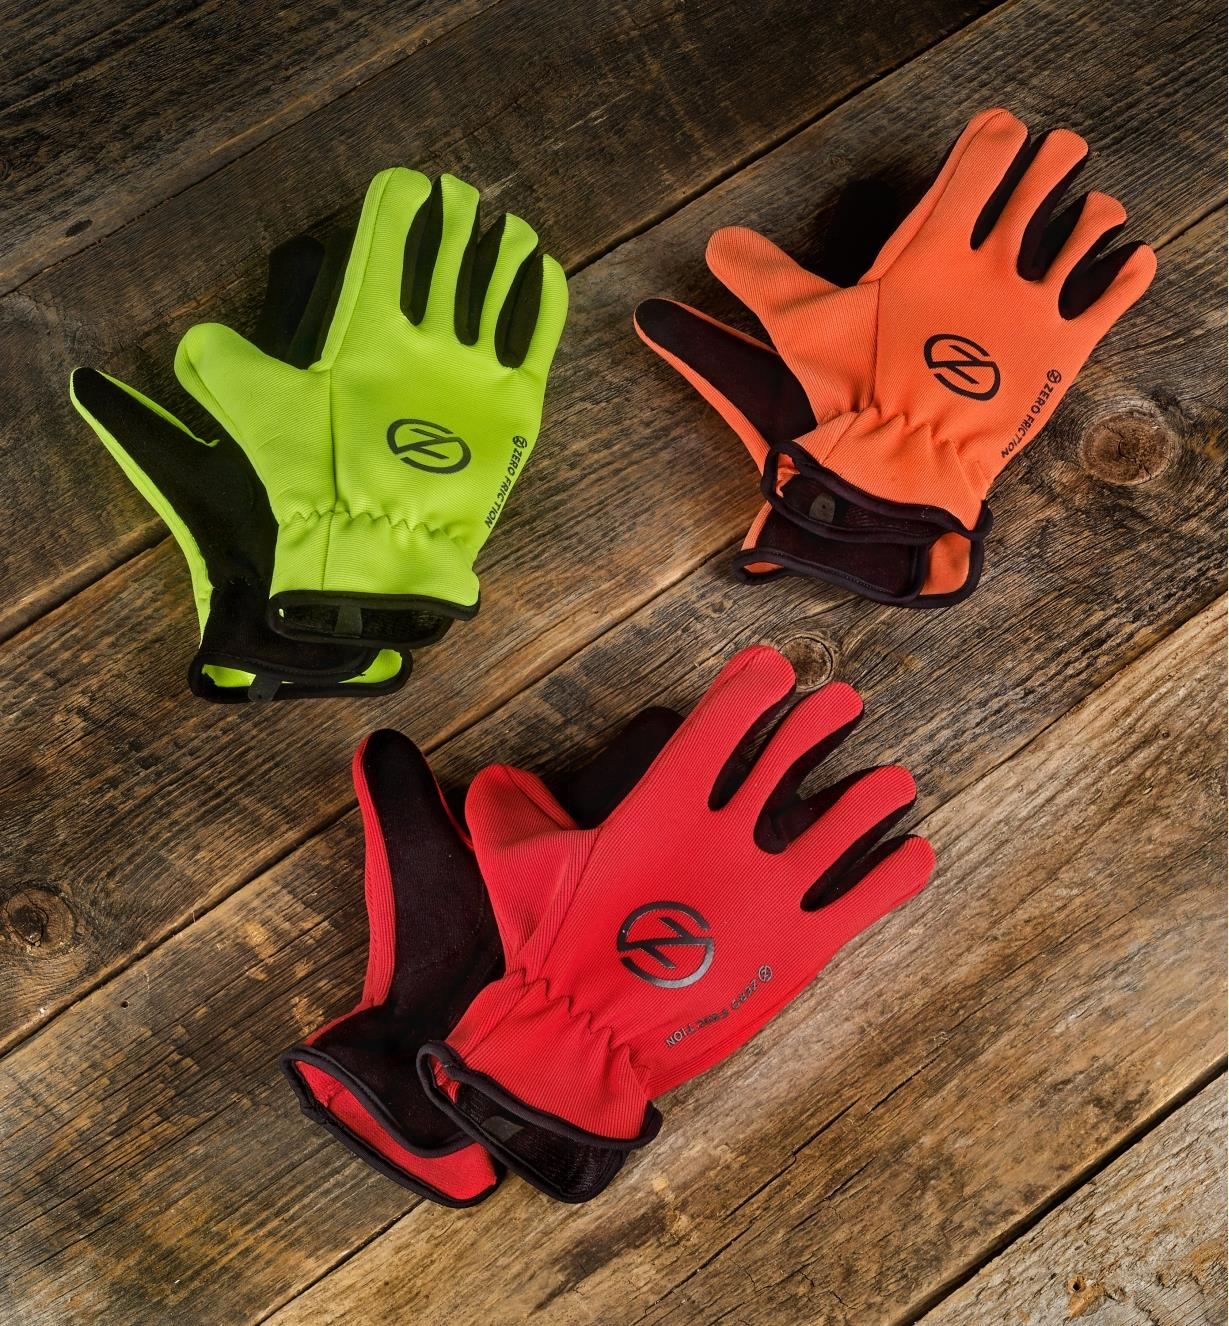 99W8470 - Universal-Fit Gloves, 3 pairs